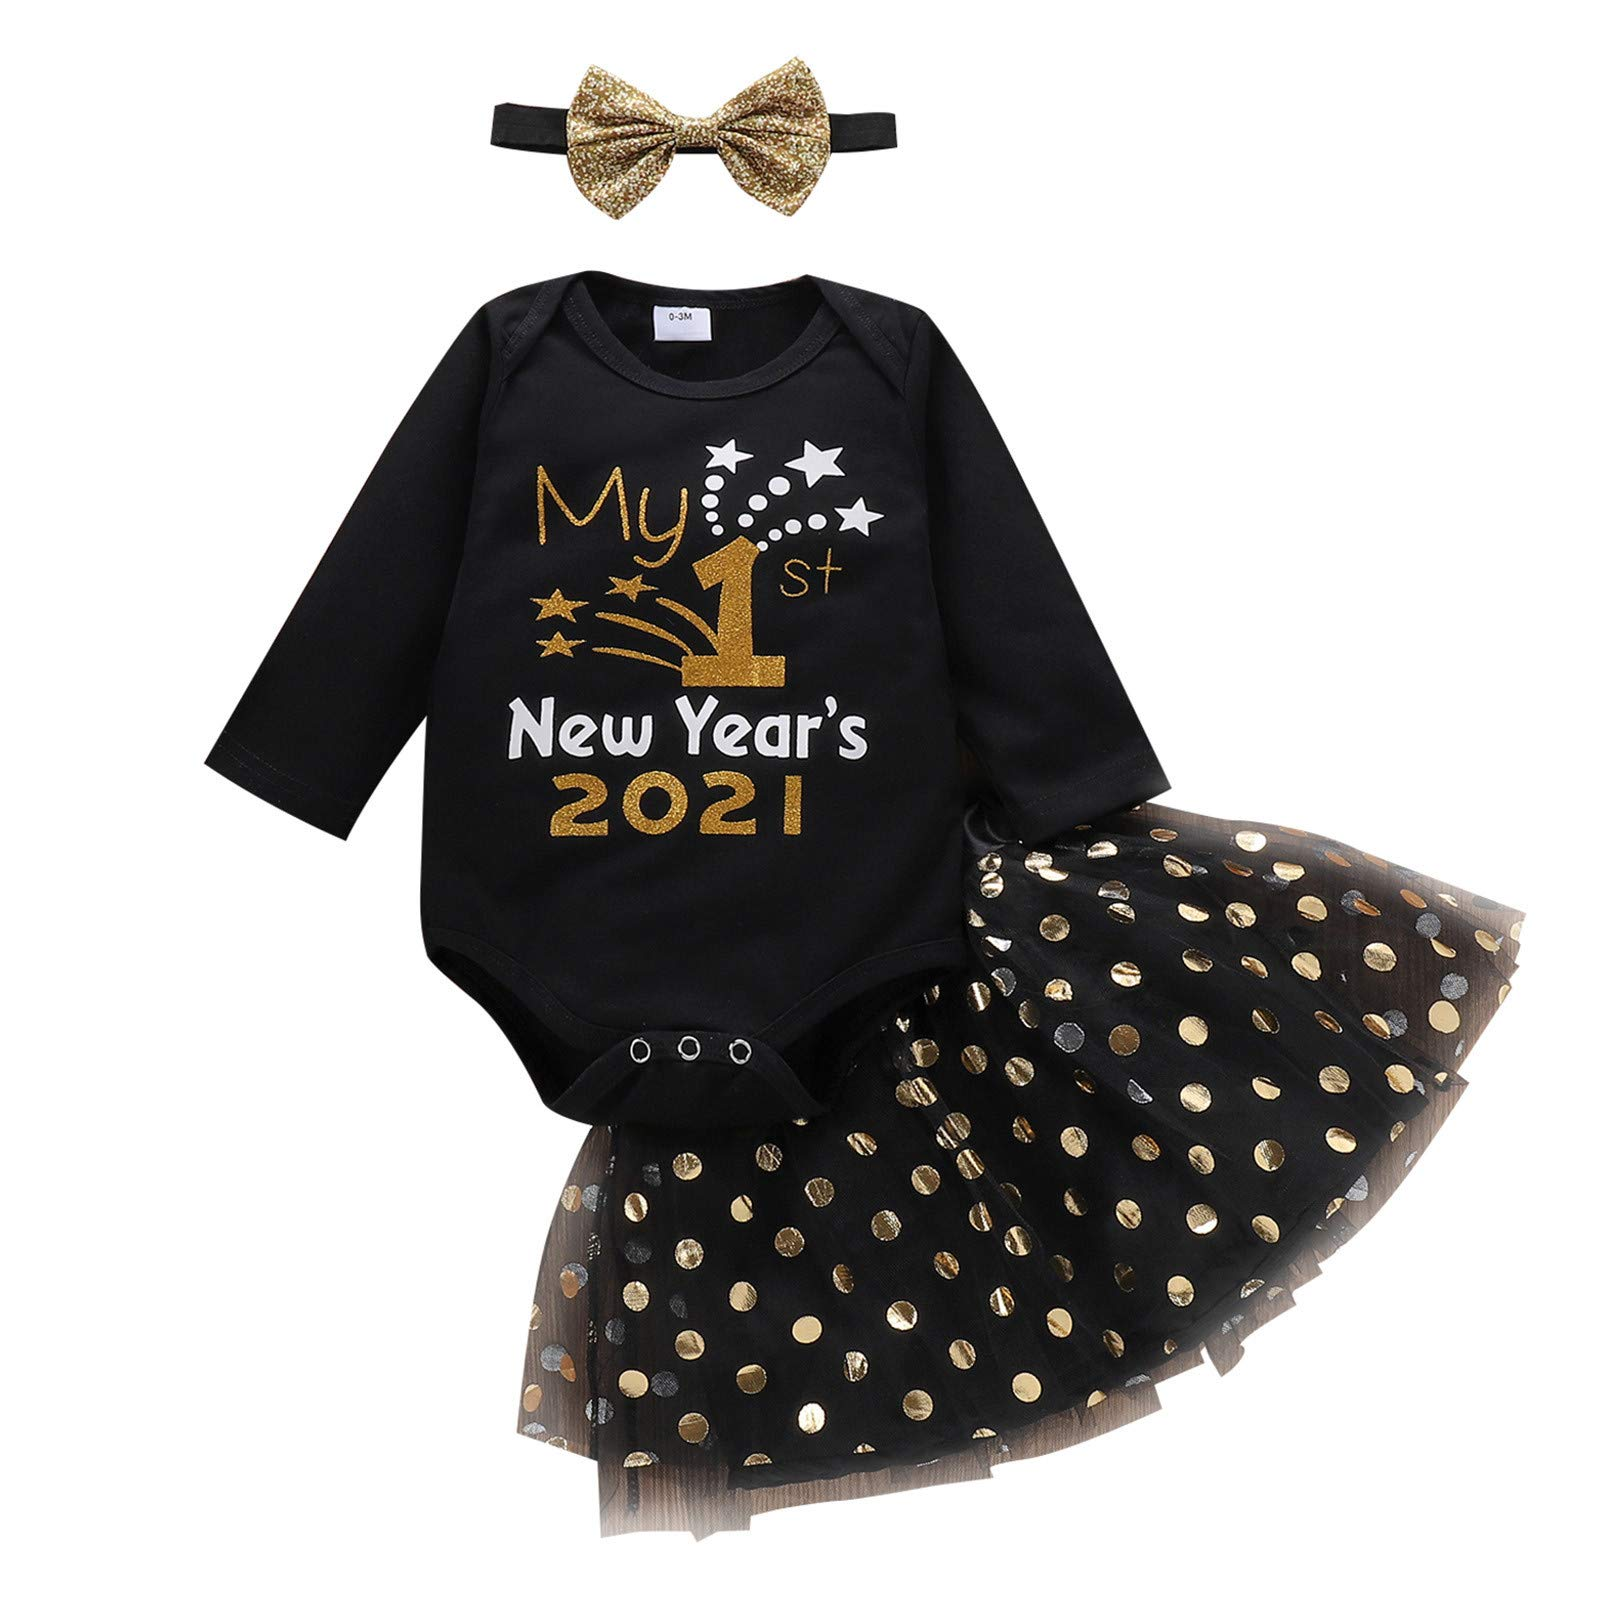 Infant Baby Girls Romper Print My 1st New Year's 2021 Outfit Tutu Skirt Jumpsuit